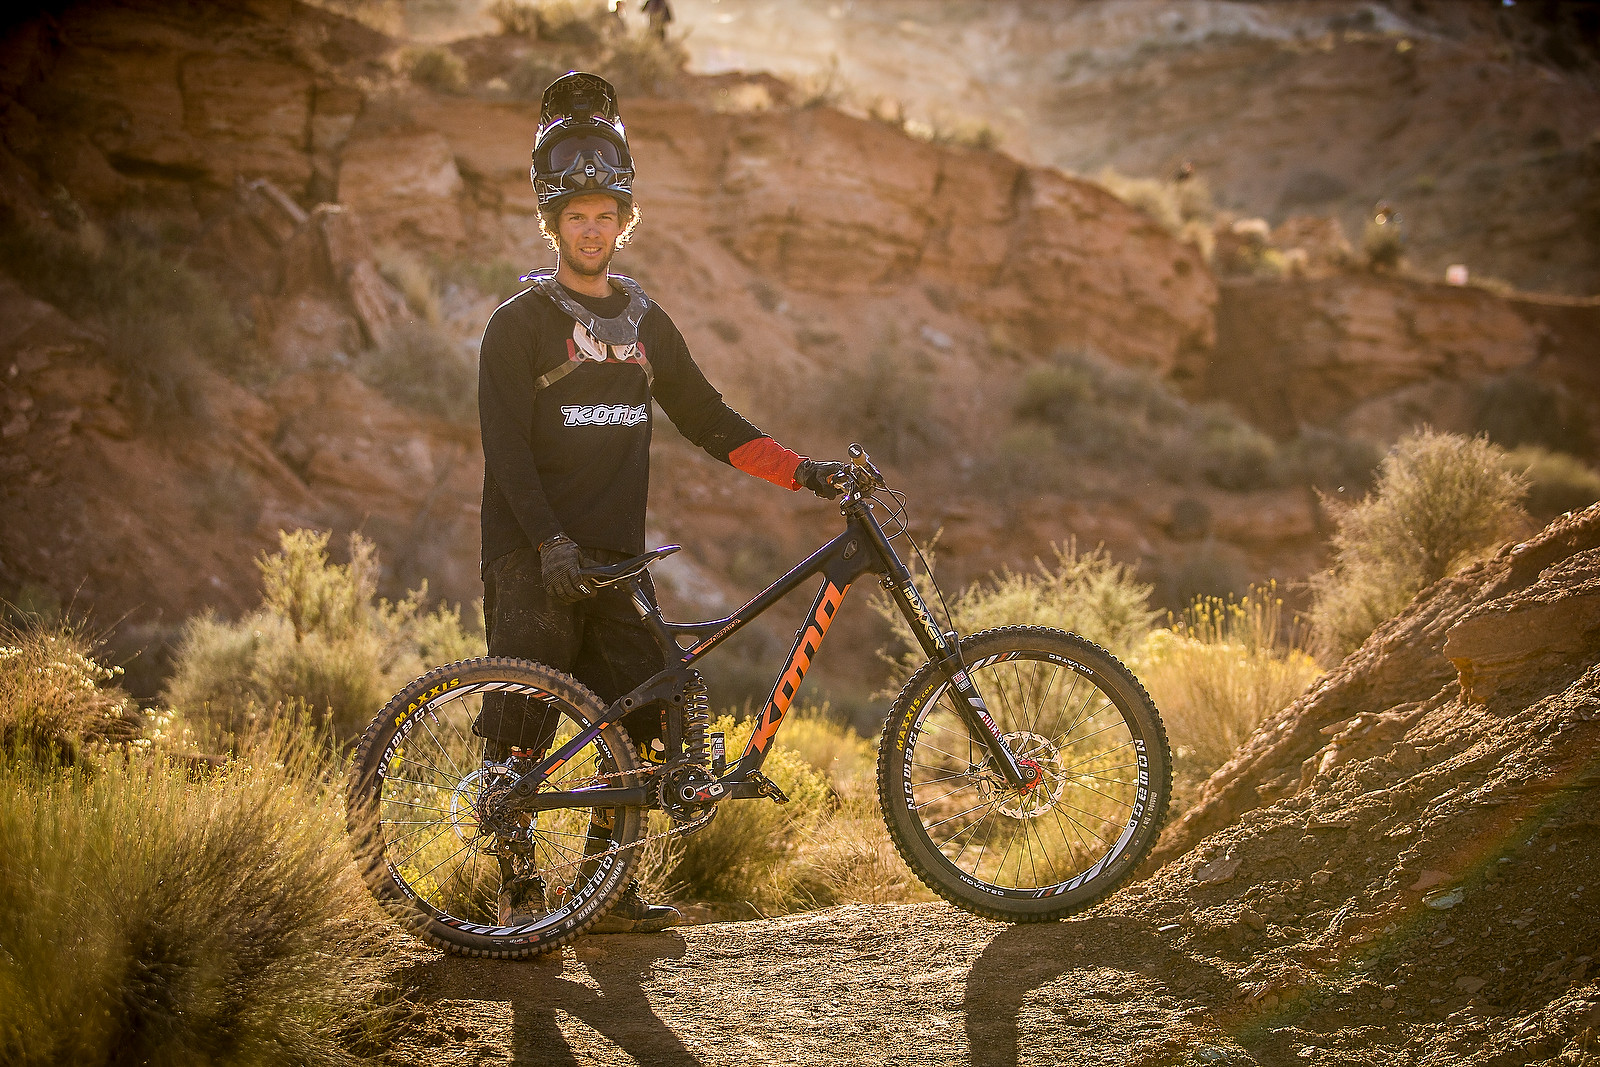 Antoine Bizet with his Kona Supreme Operator at Rampage - Pro Bikes - Red Bull Rampage - Mountain Biking Pictures - Vital MTB